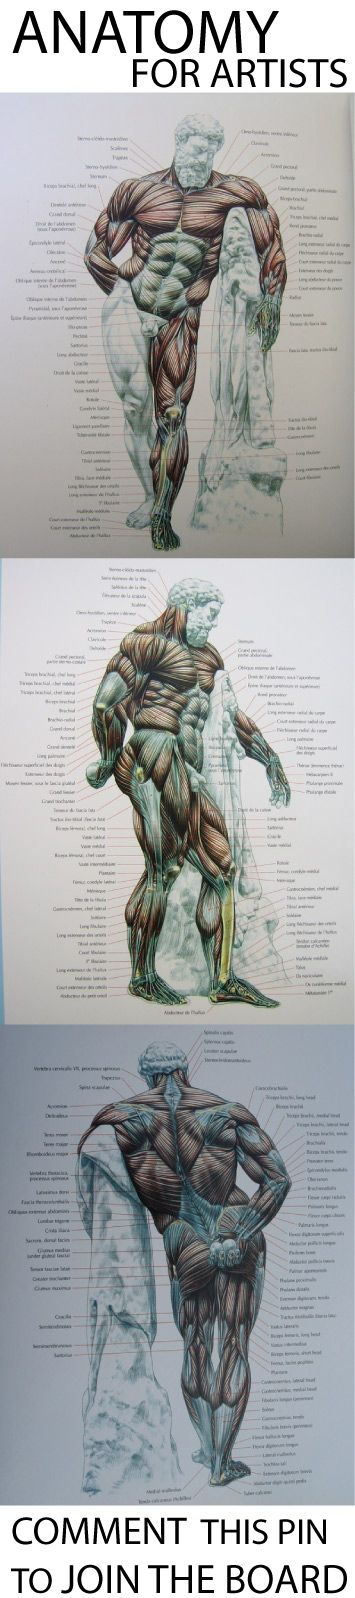 hi I made a new board anatomy & tutorials for artists. comment this pin to be added to the board. have a nice day join us http://pinterest.com/koztar/cg-anatomy-tutorials-for-artists/